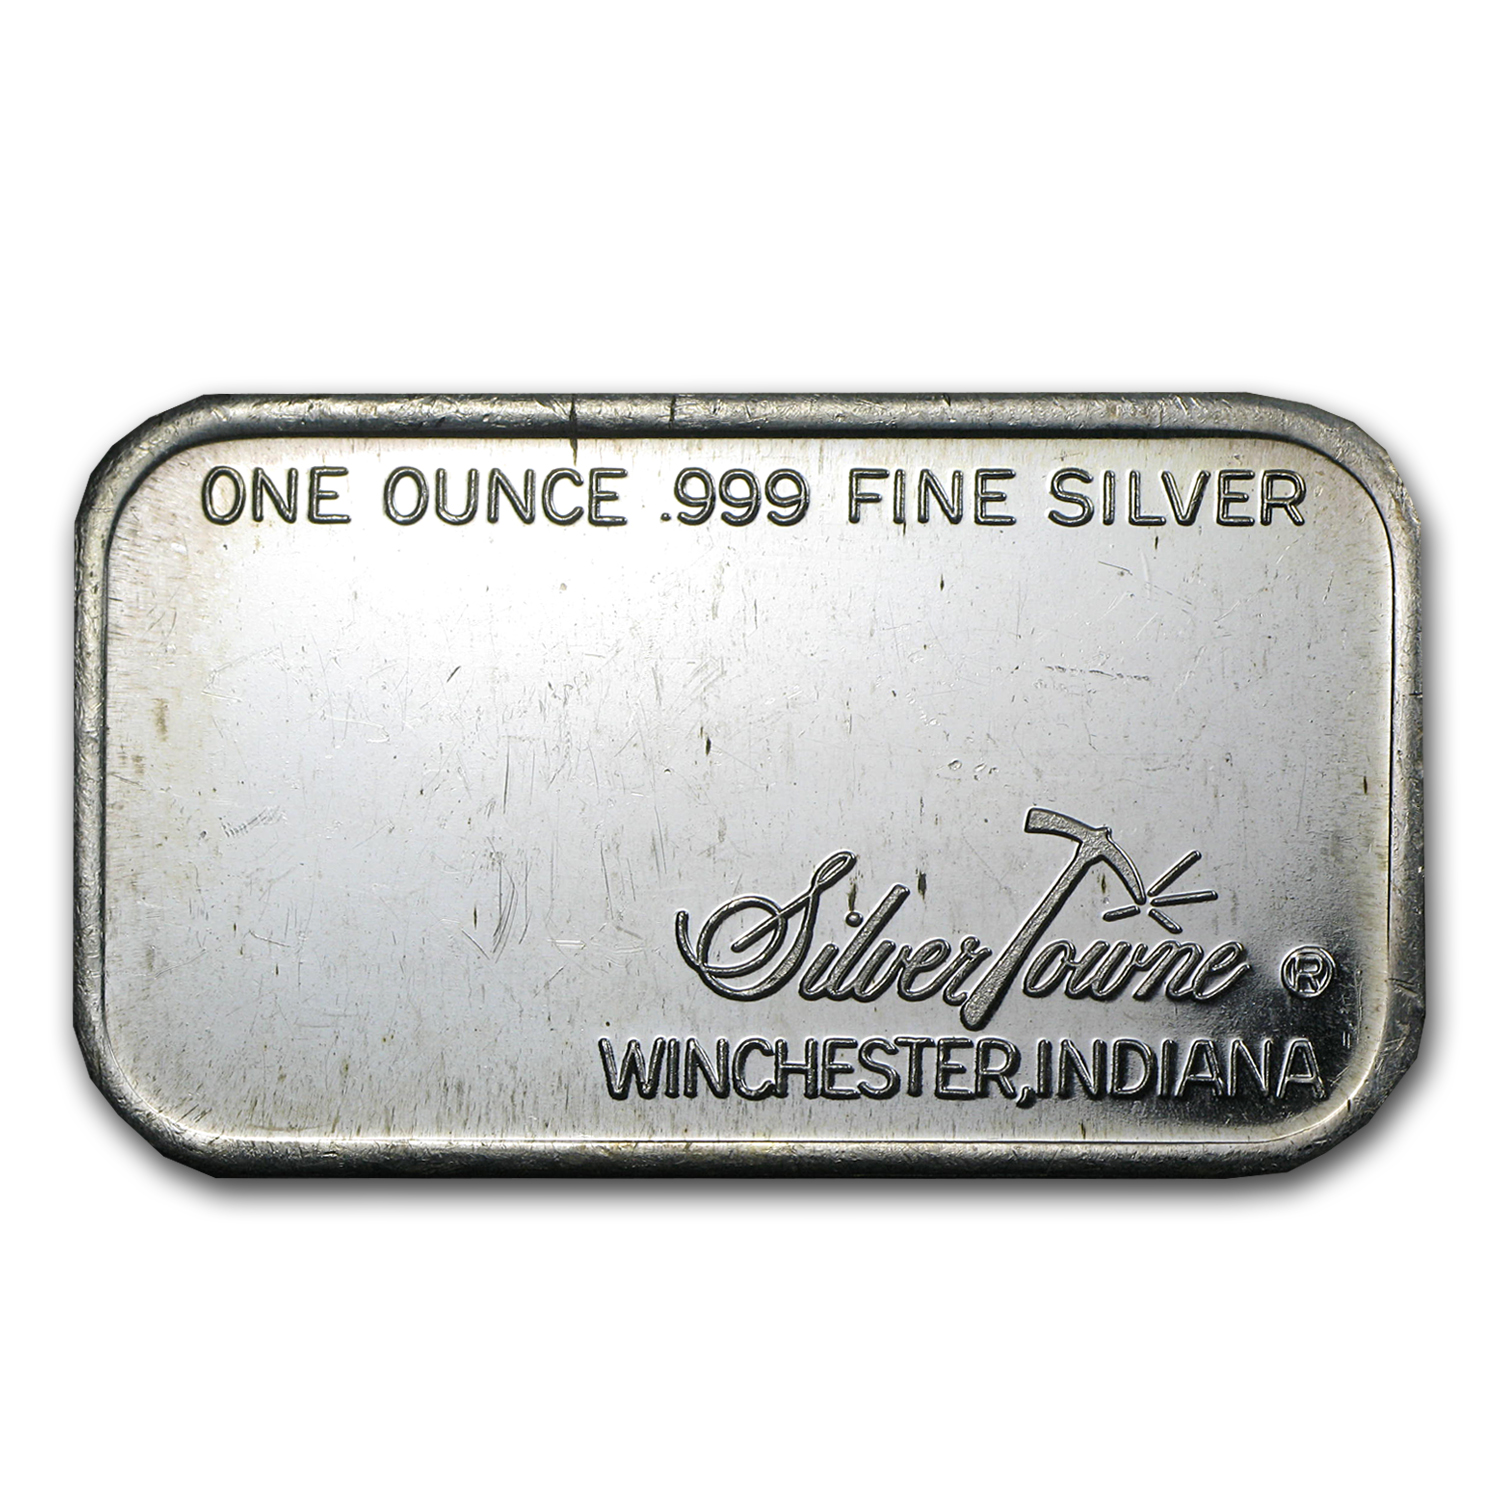 1 oz Silver Bars - RENO